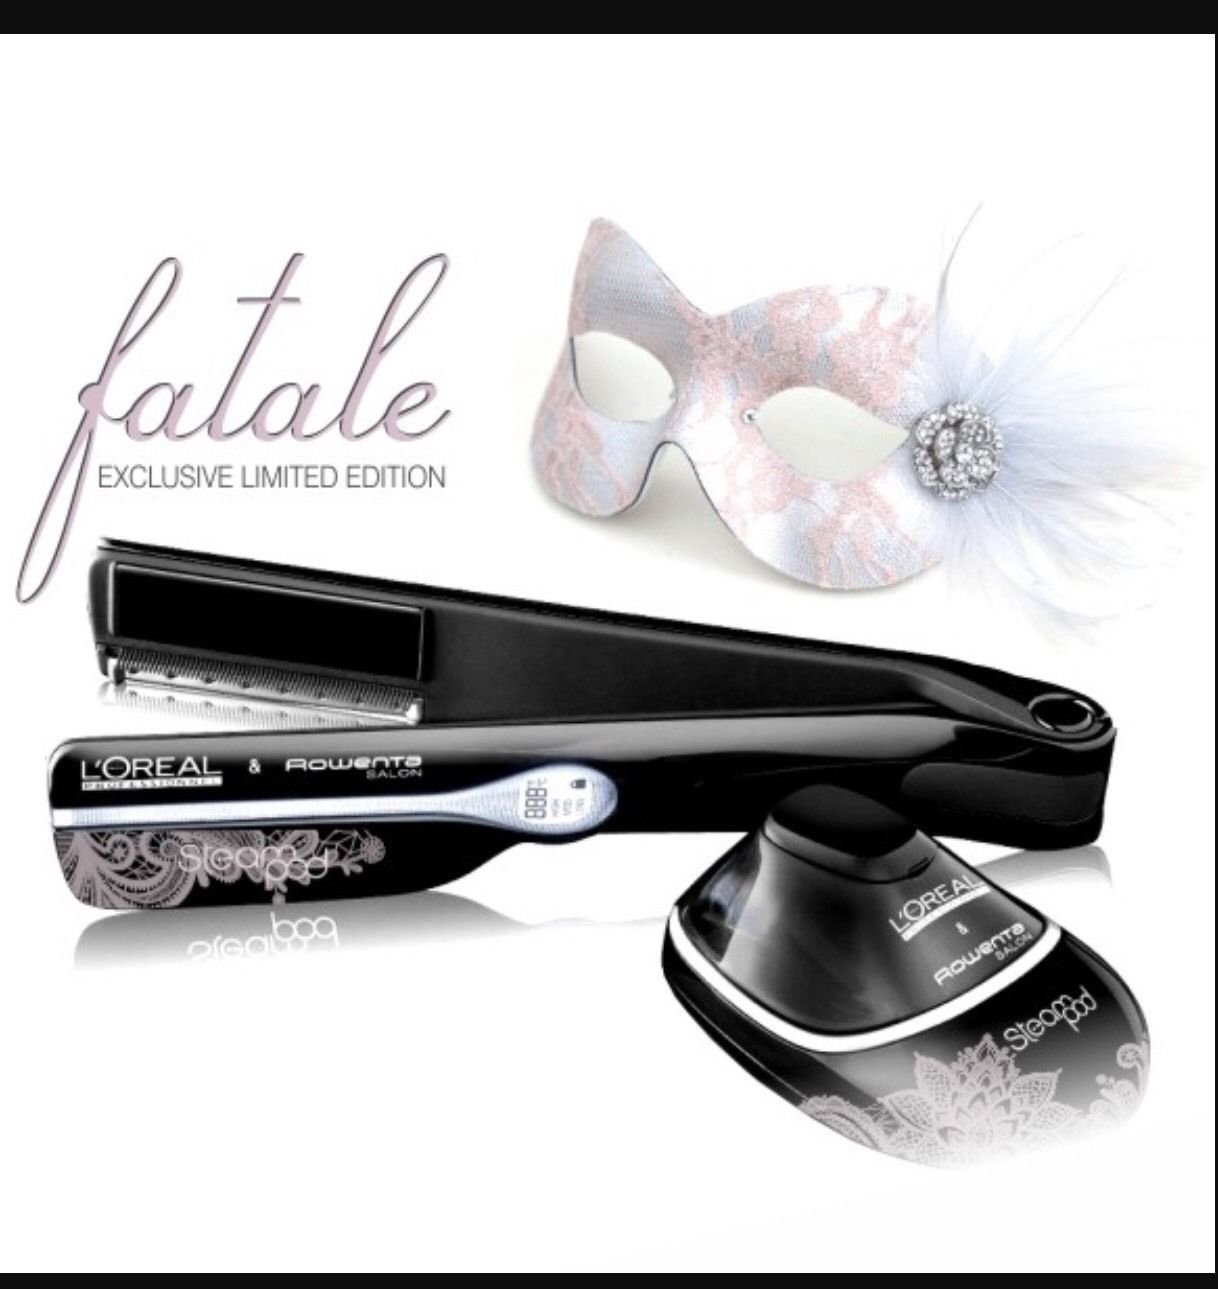 L'oreal professionnel haarpflege steampod fatale limited edition